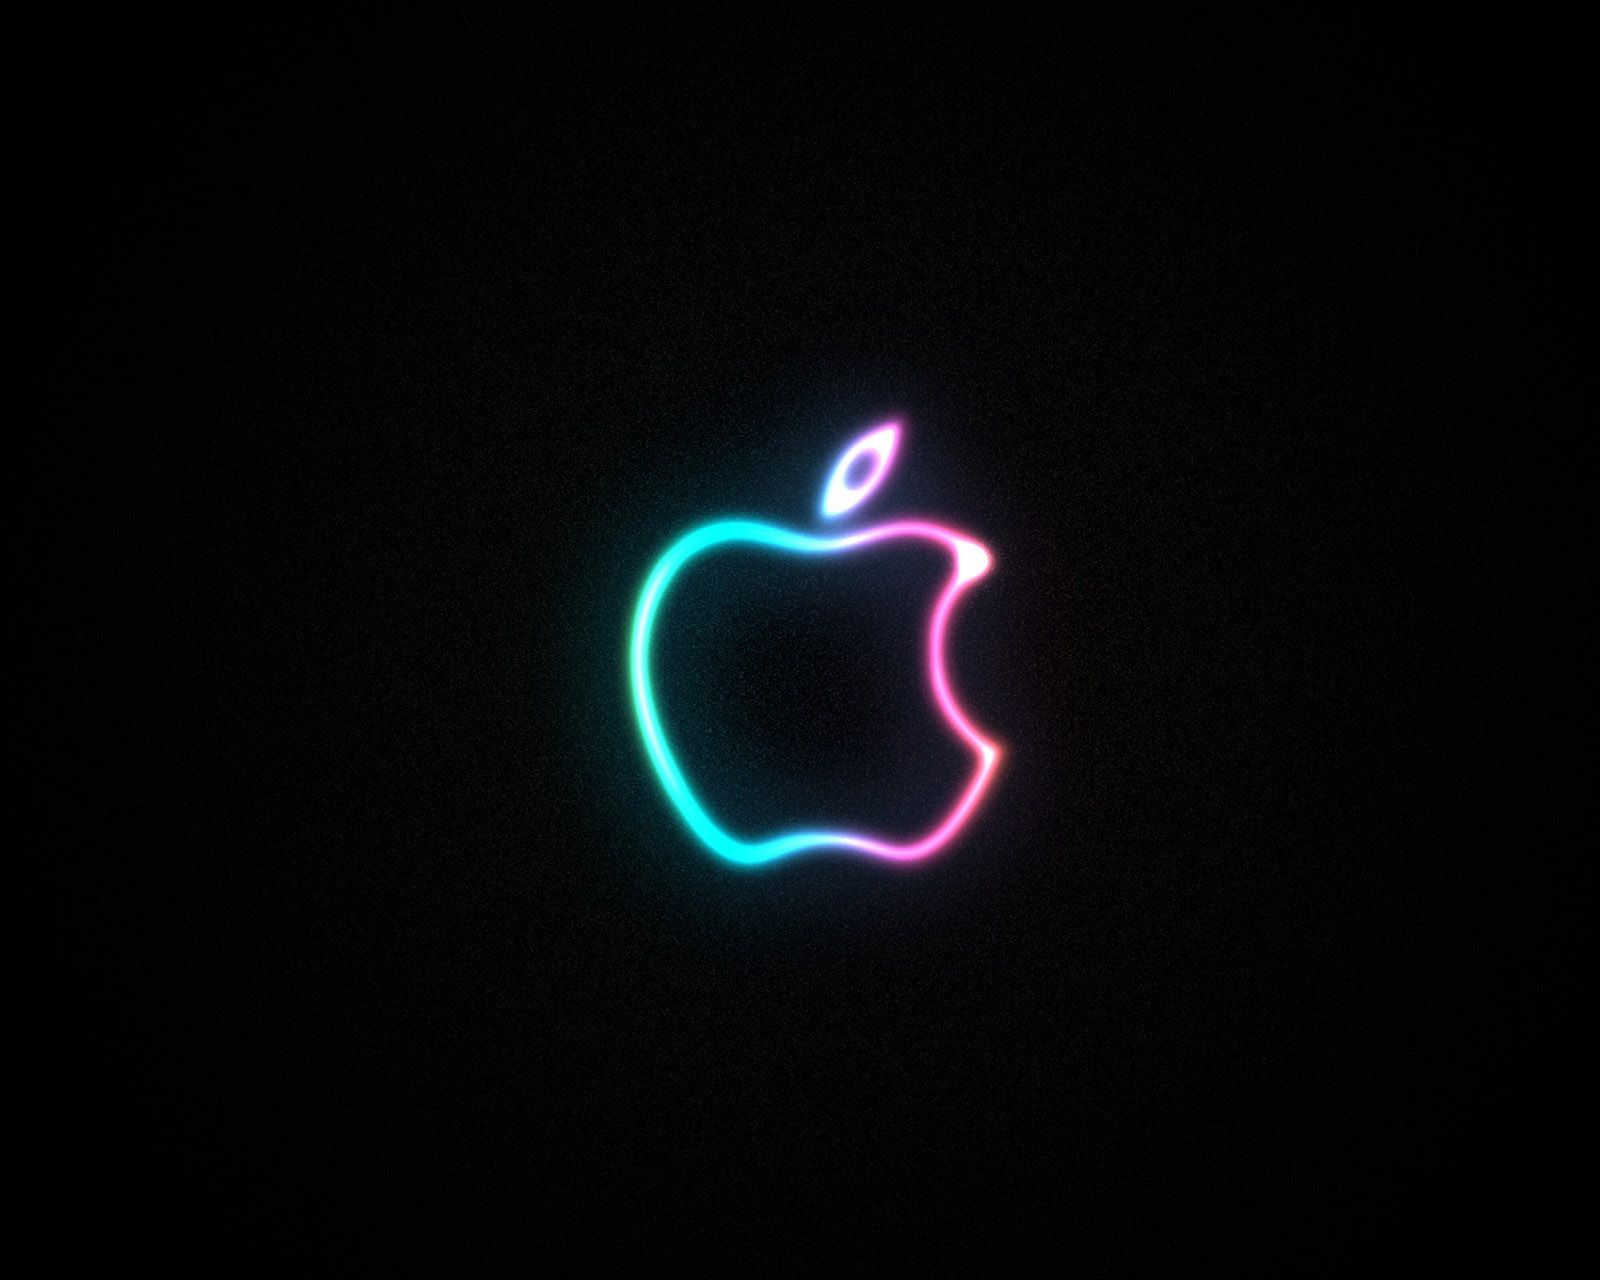 Apple Logo Wallpaper 15 Wallpaper Background Hd On Walltecno Com Apple Logo Wallpaper Apple Logo Apple Wallpaper